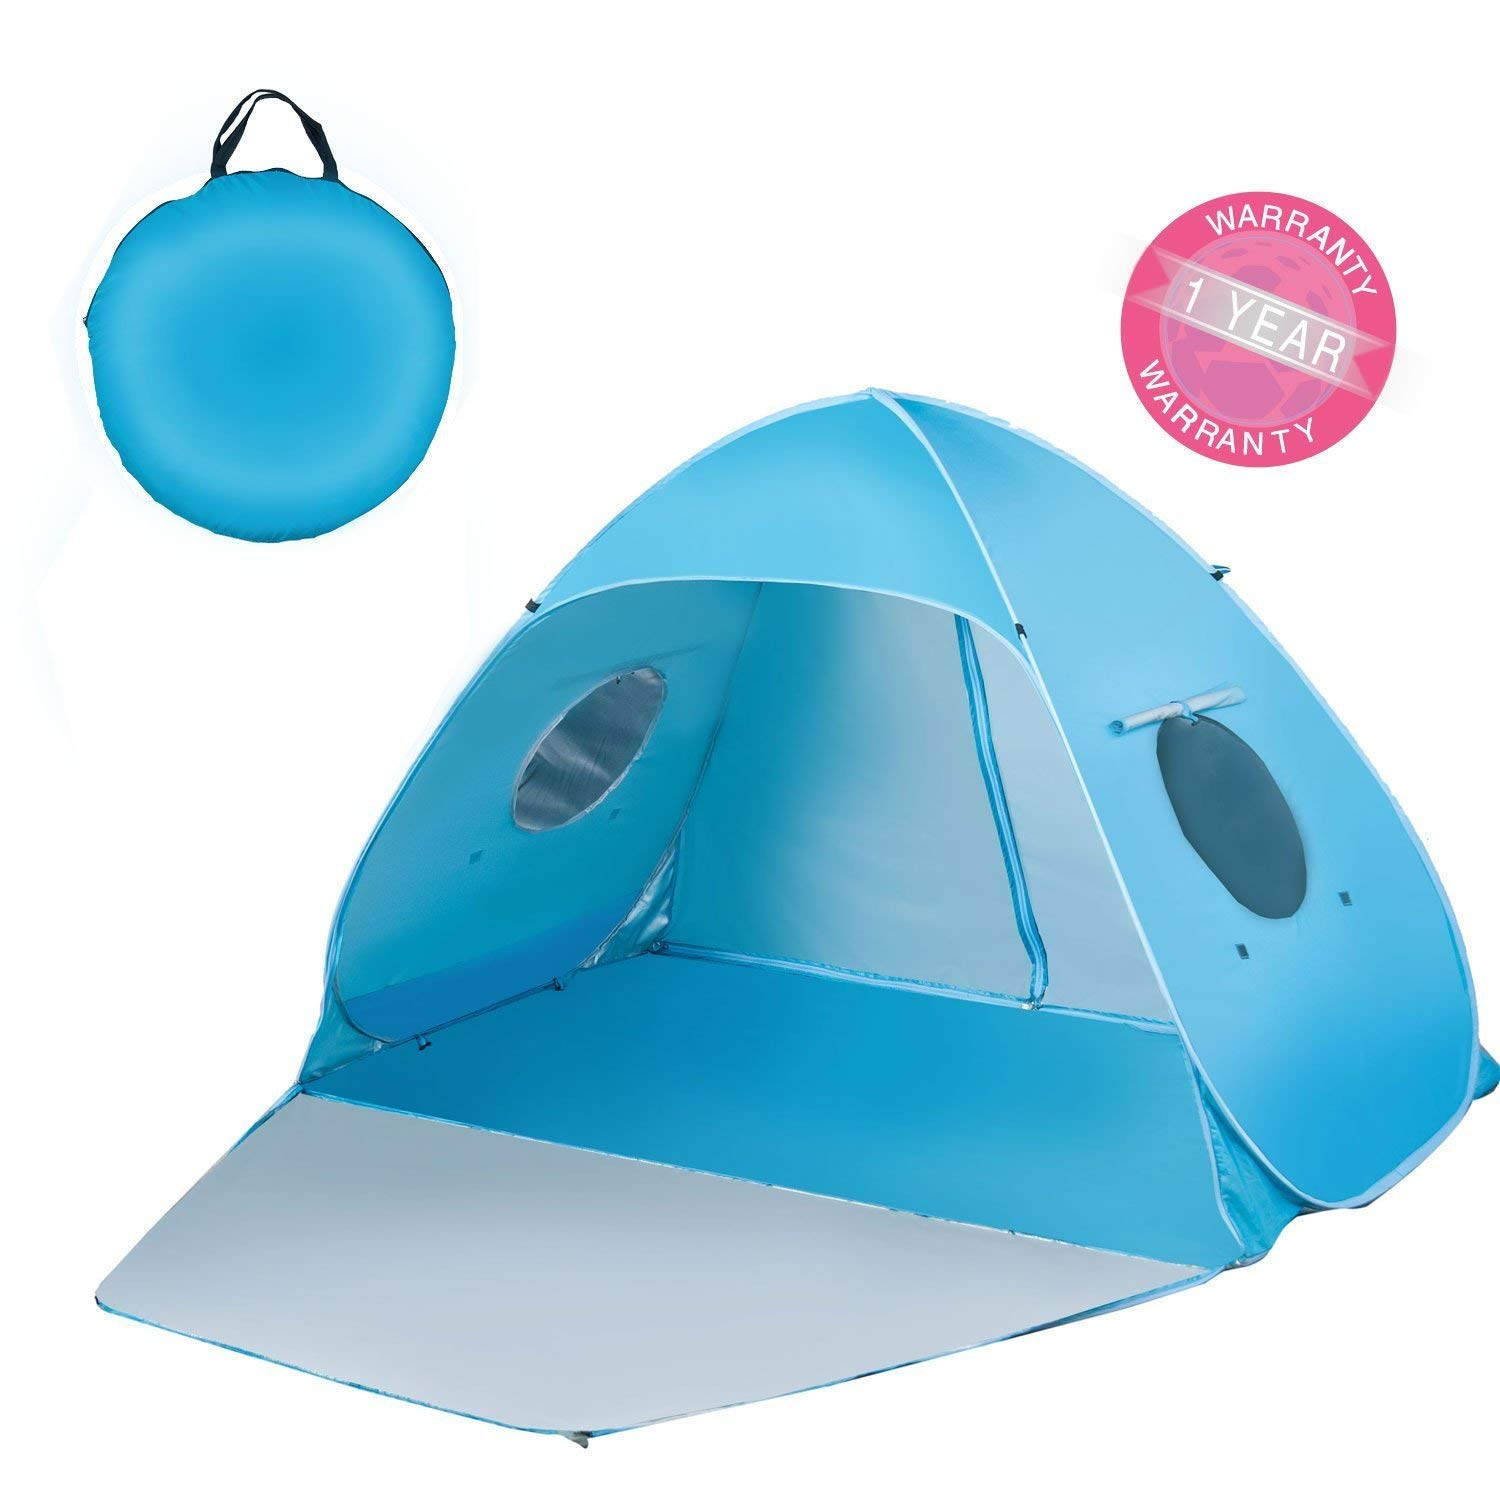 Extra Large Beach Tent Sun Shade Shelter Pop Up Instant Portable Outdoors 3-4 Person Beach Cabana Sets Up in Seconds, Blue, 78.7'' L X 47.2'' W X 51.2'' H by Suhleir